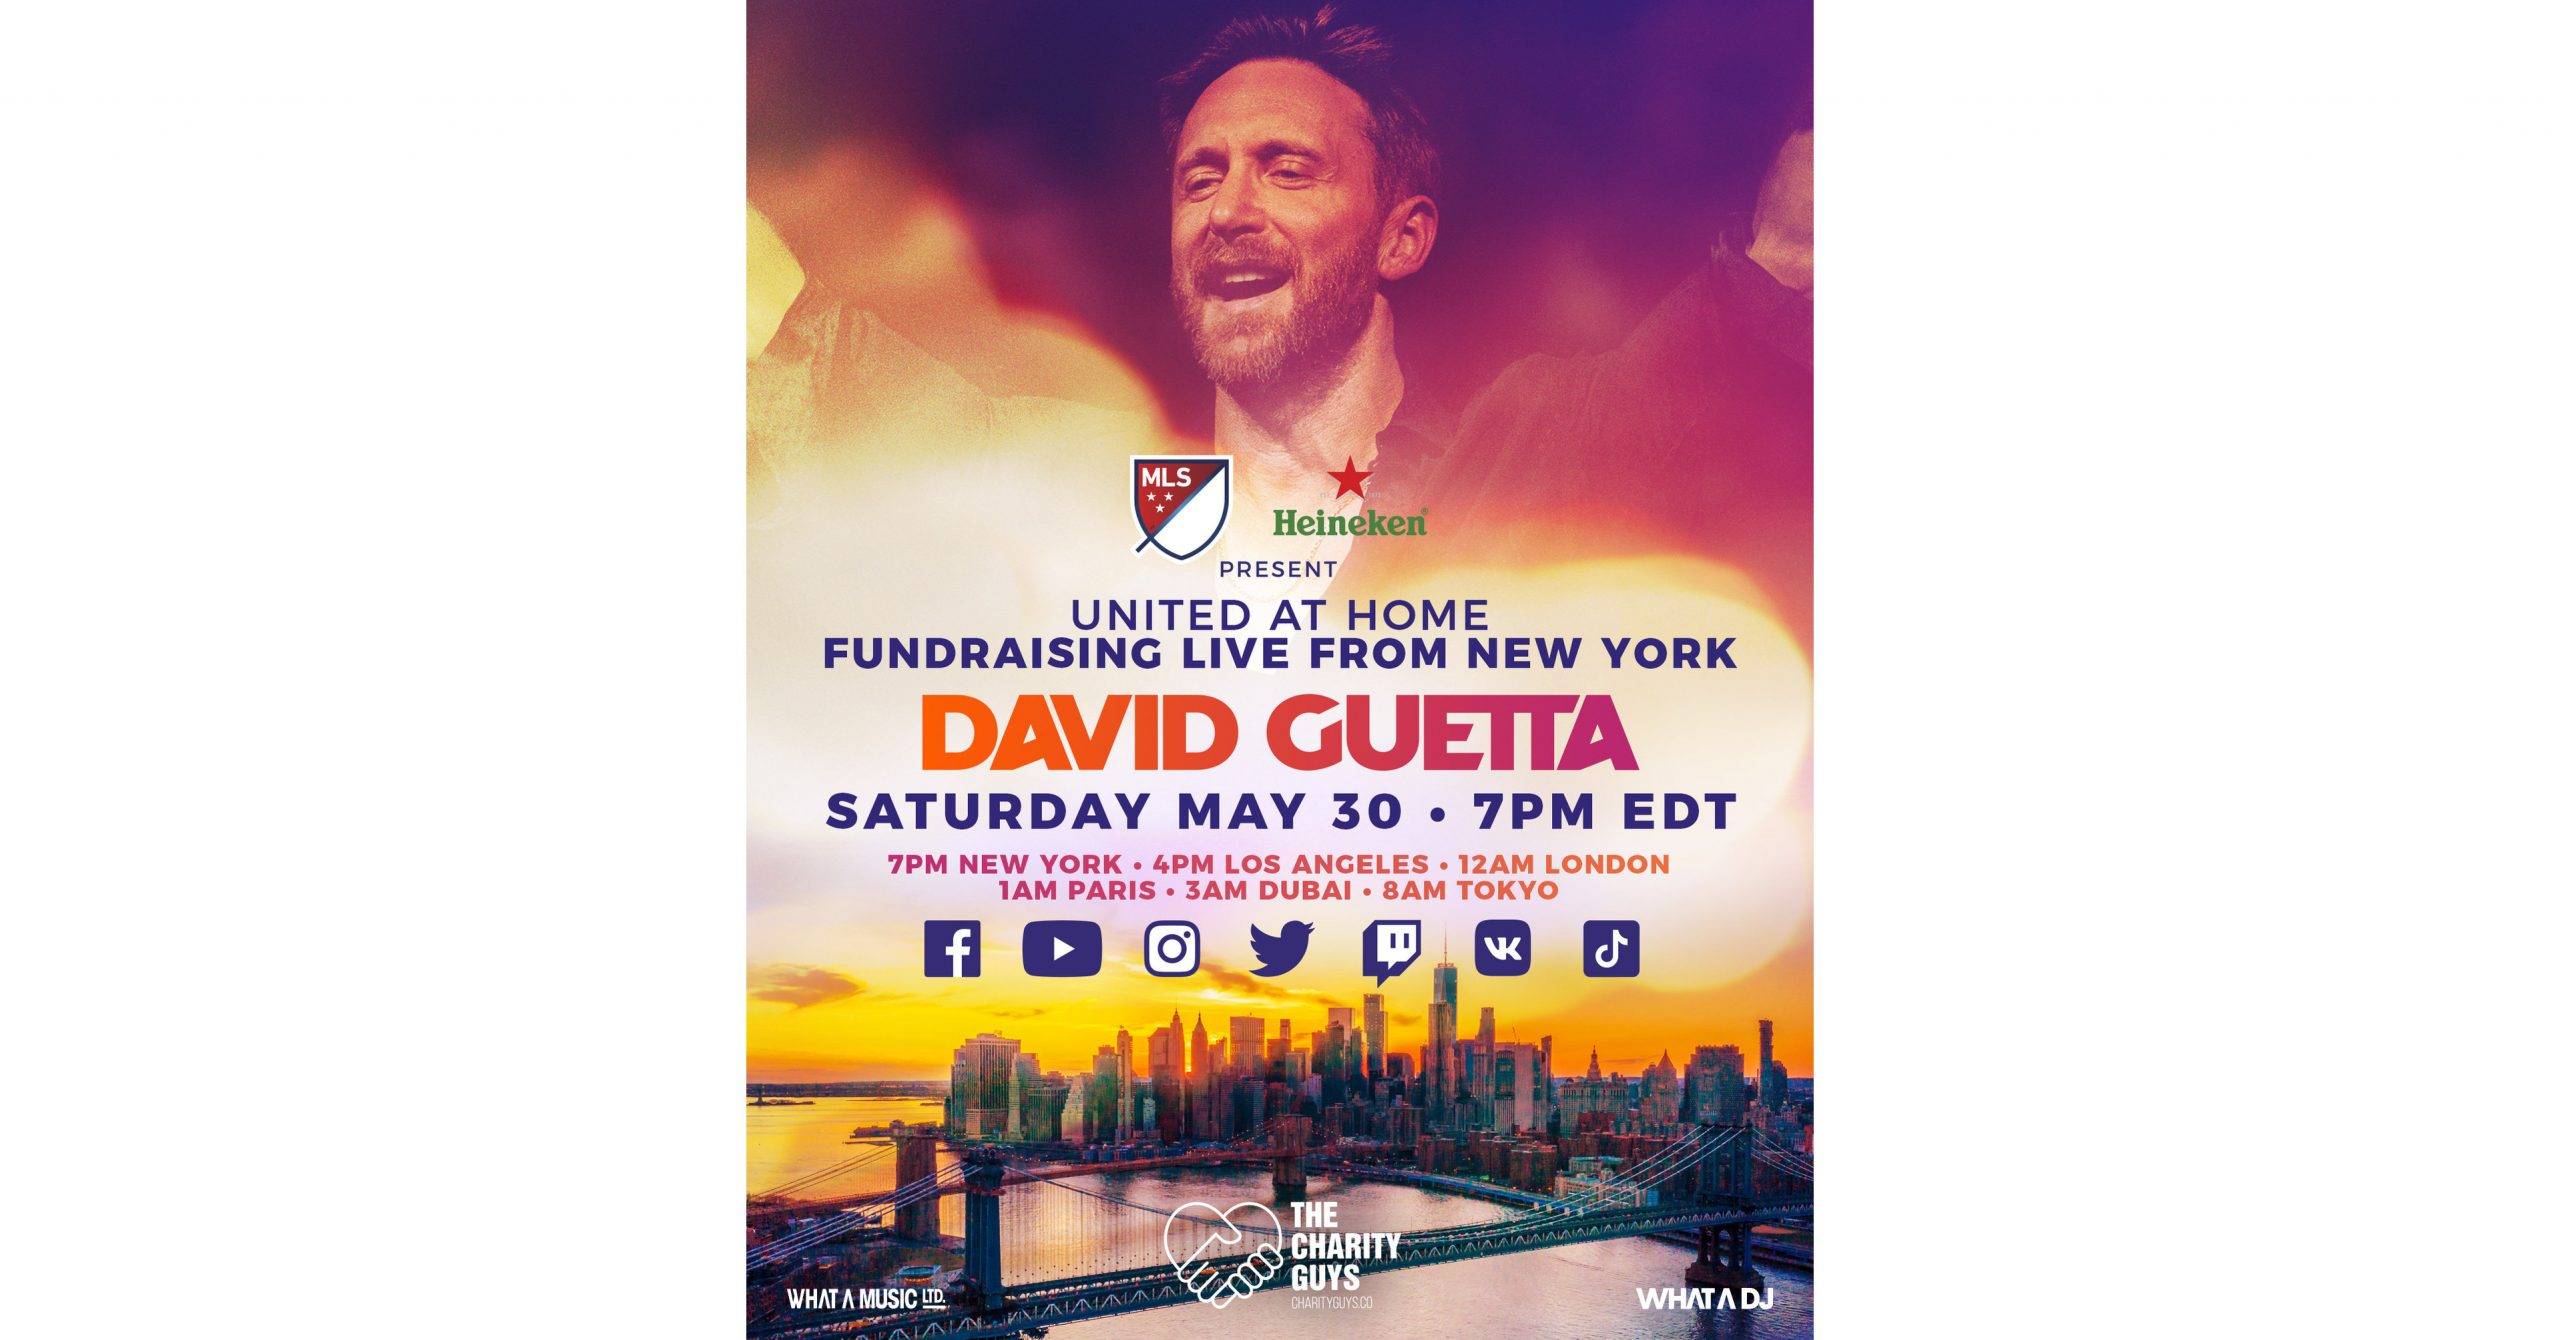 """Mls And Heineken® To Present David Guetta's Second """"united At Home"""" Charity Livestream Event photo"""